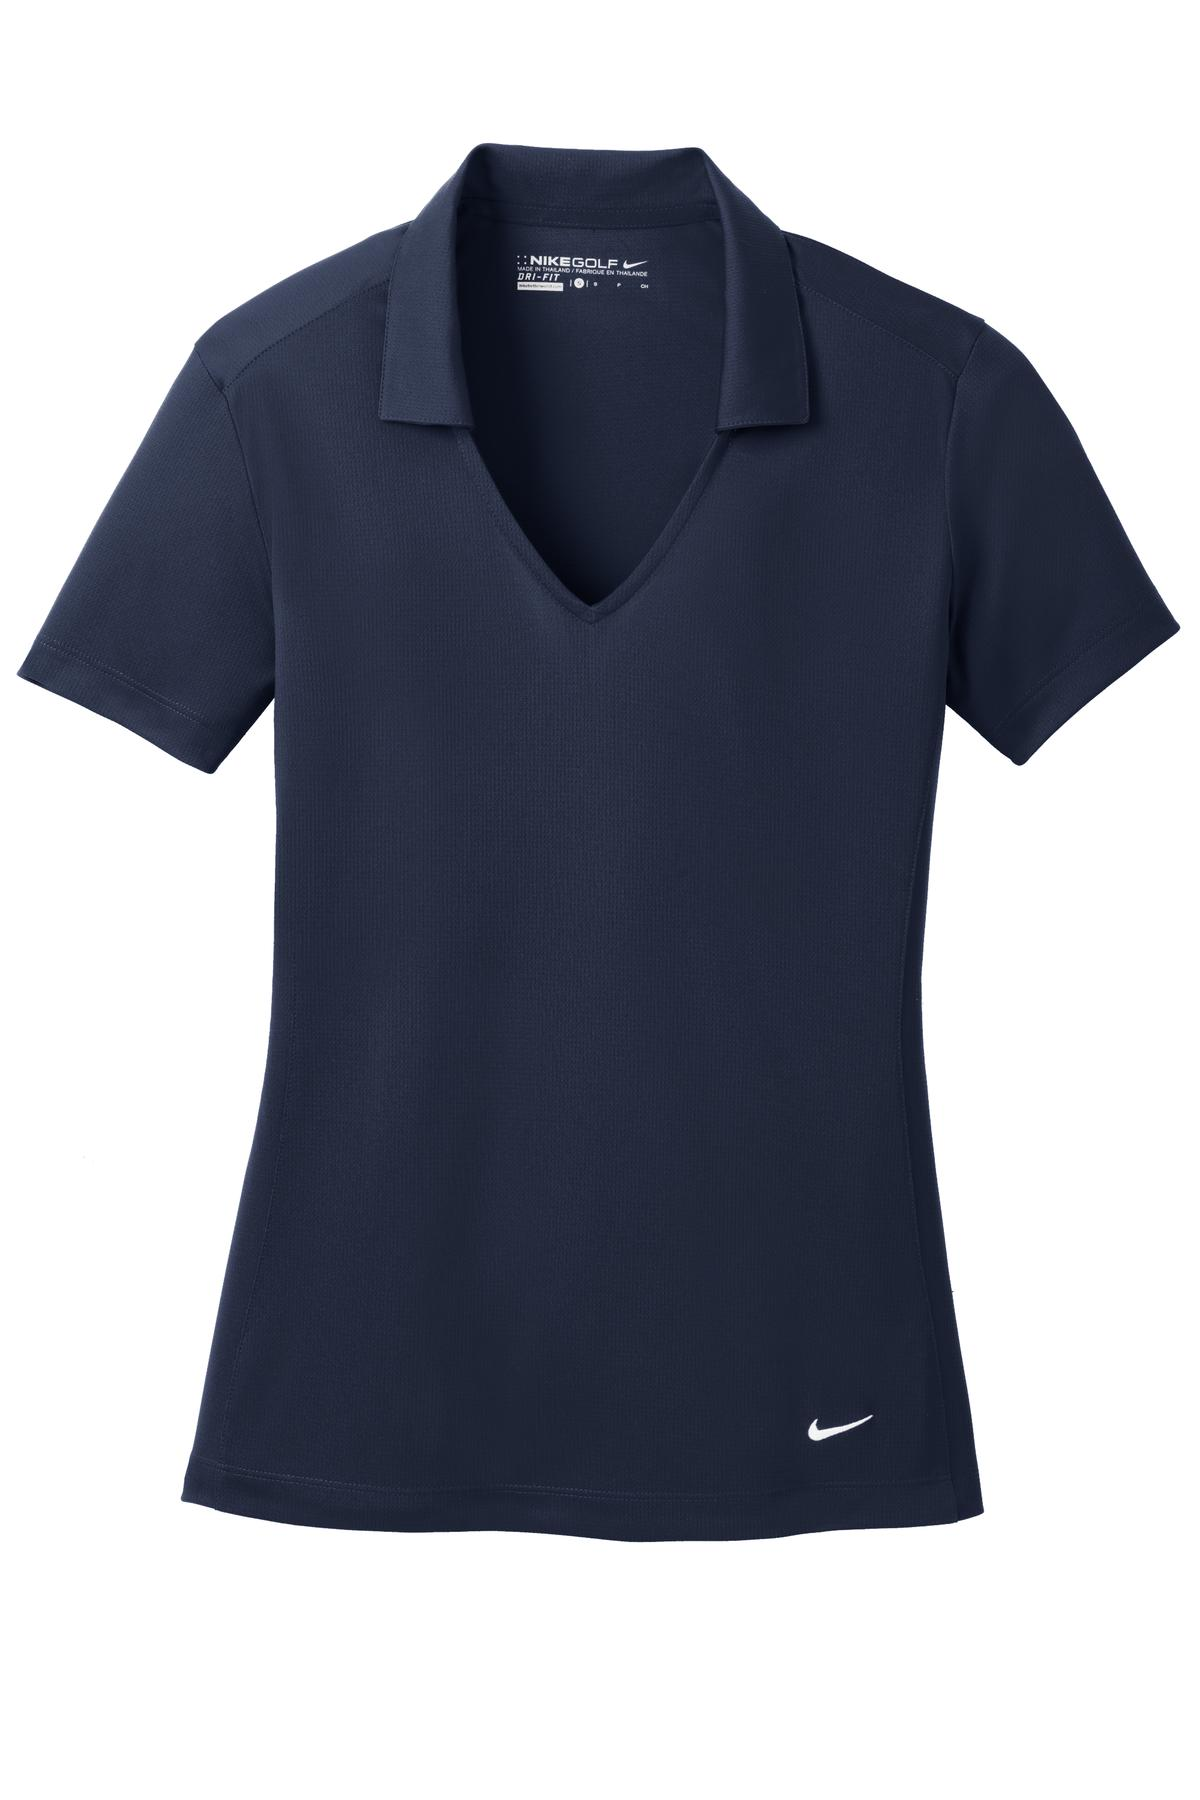 Marine Nike Ladies Dri-FIT Vertical Mesh Polo.